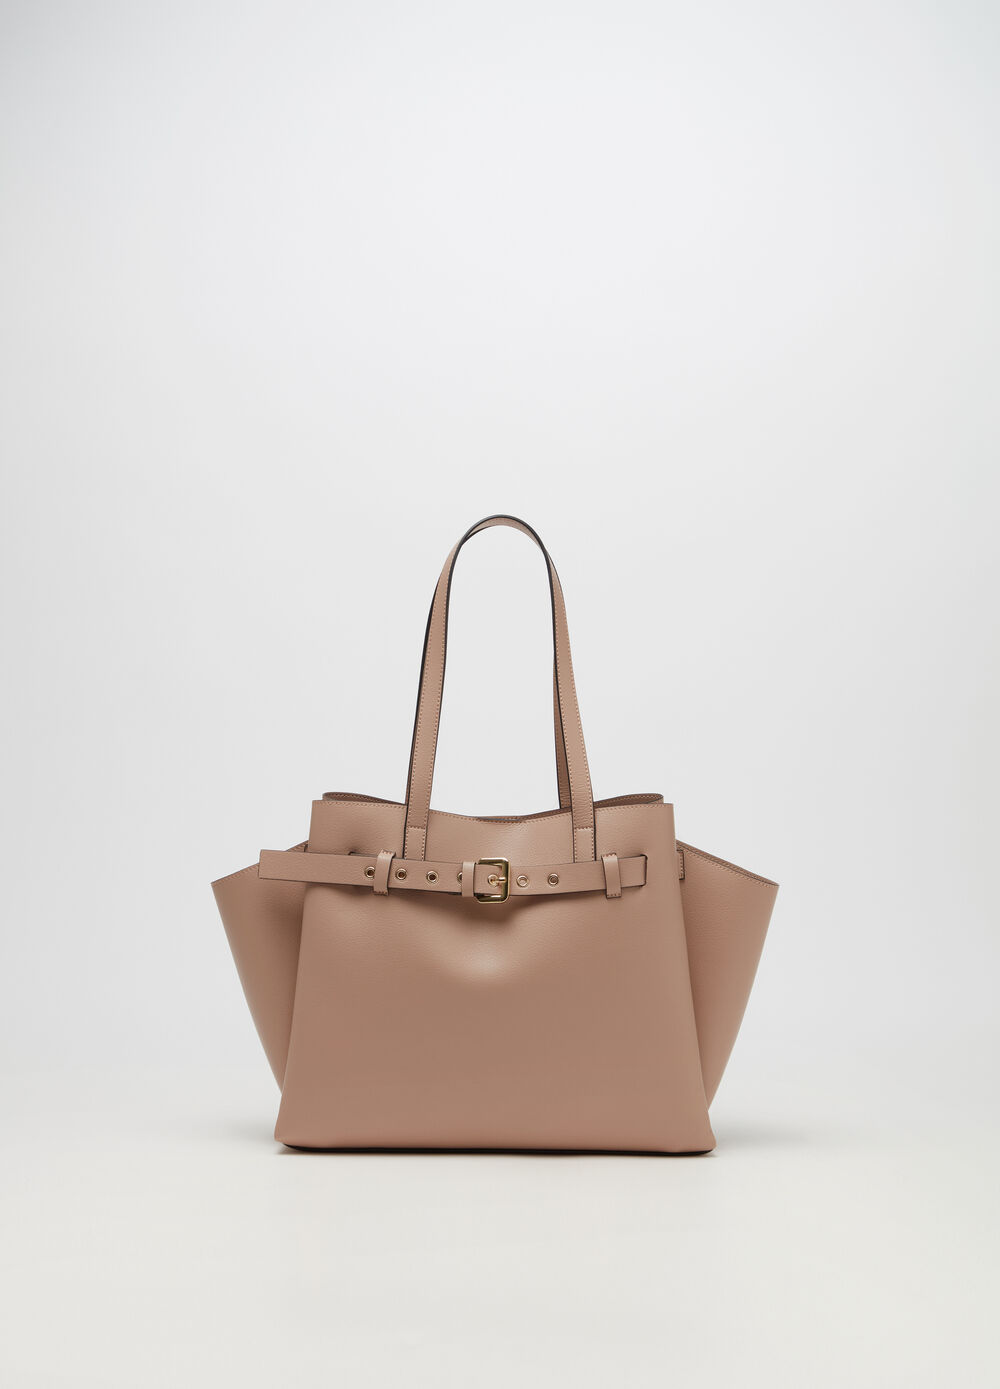 Leather-look shoulder tote bag with three compartments